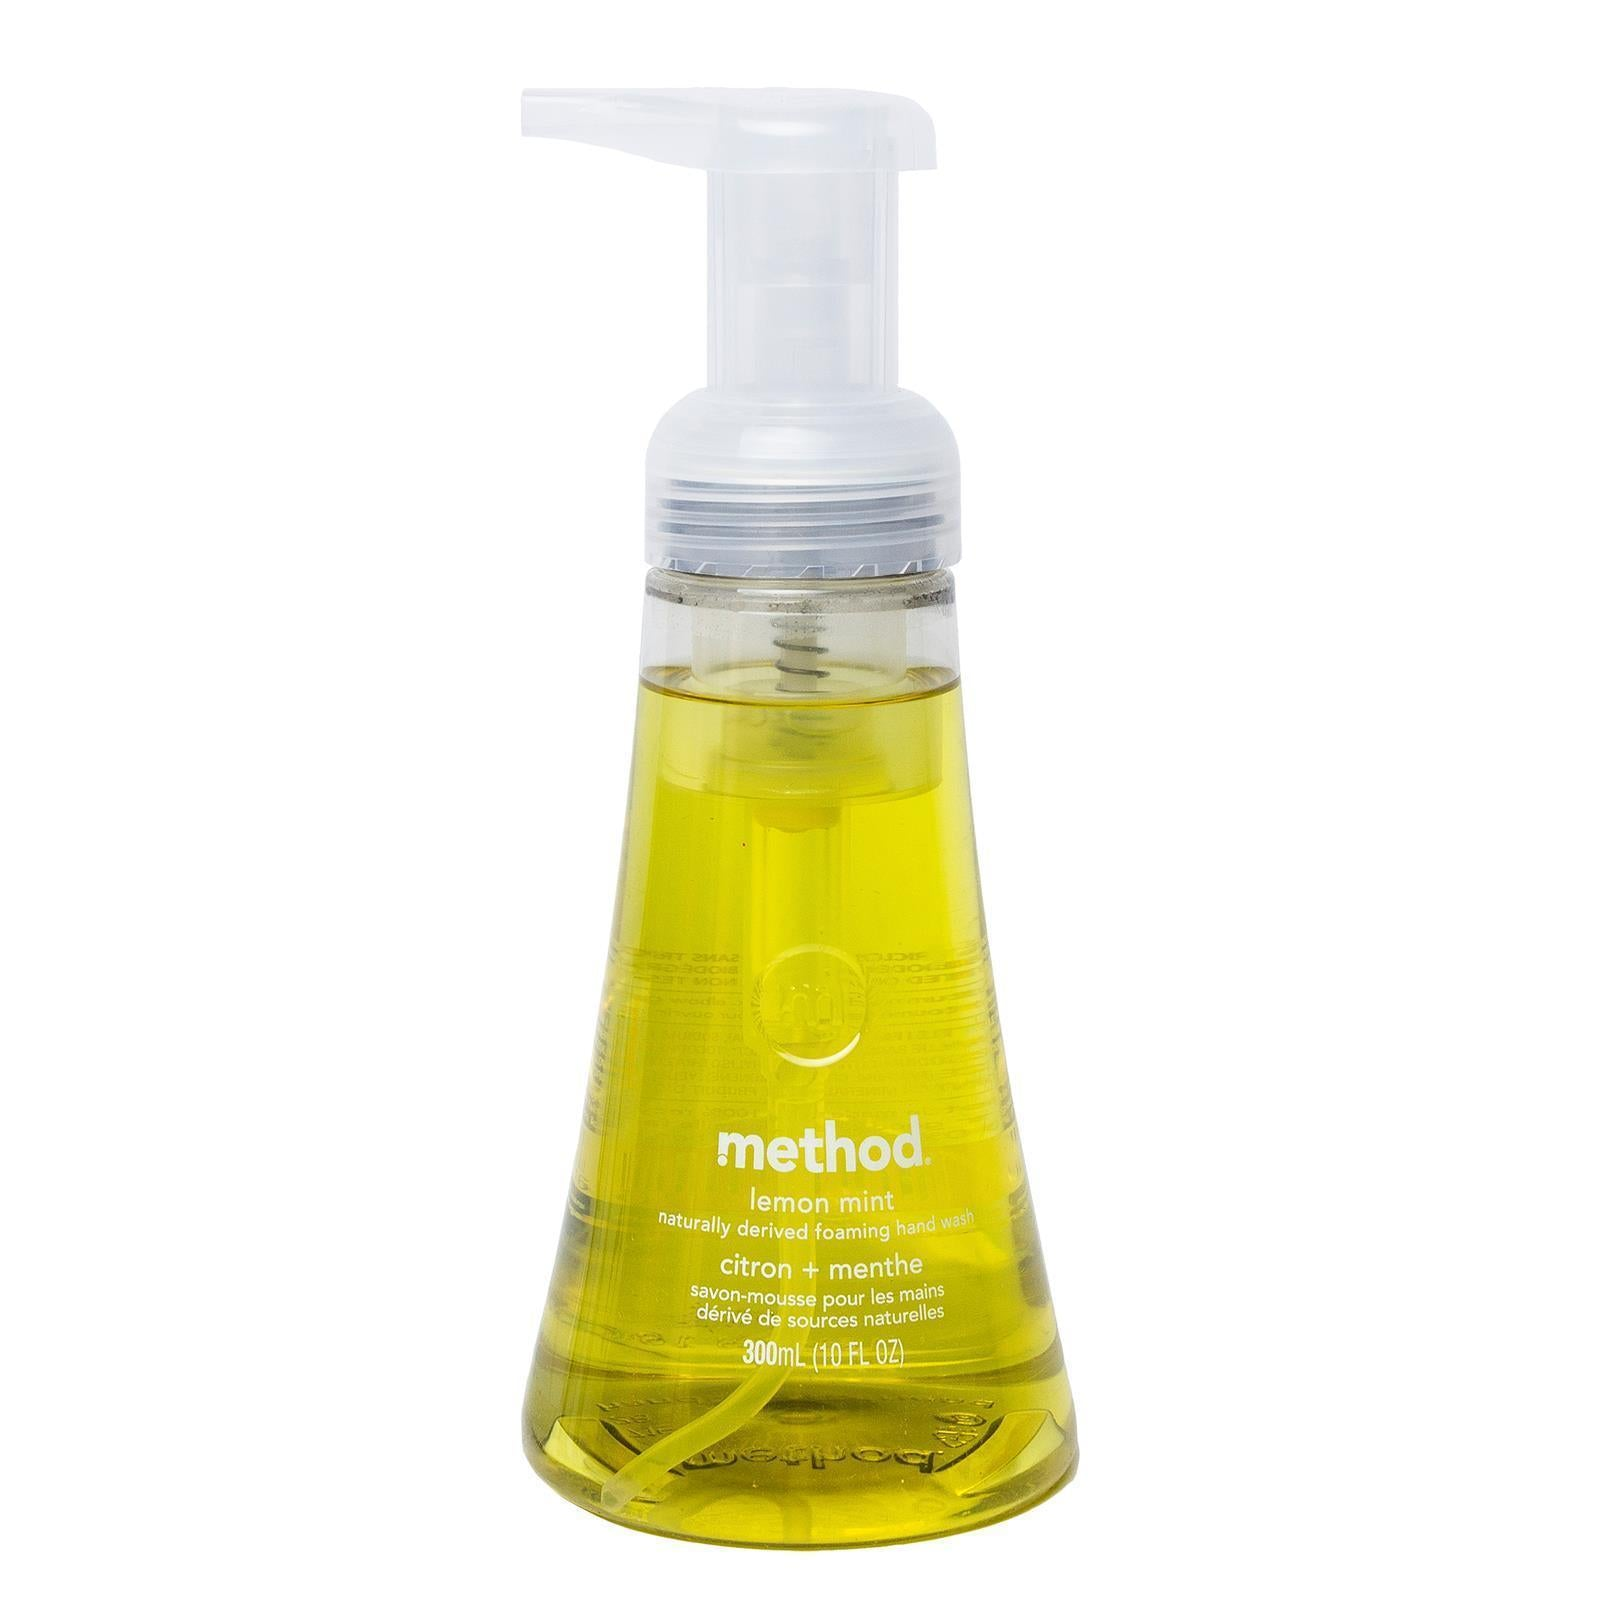 Naturally Derived Foaming Hand Wash 300ml - Lemon Mint